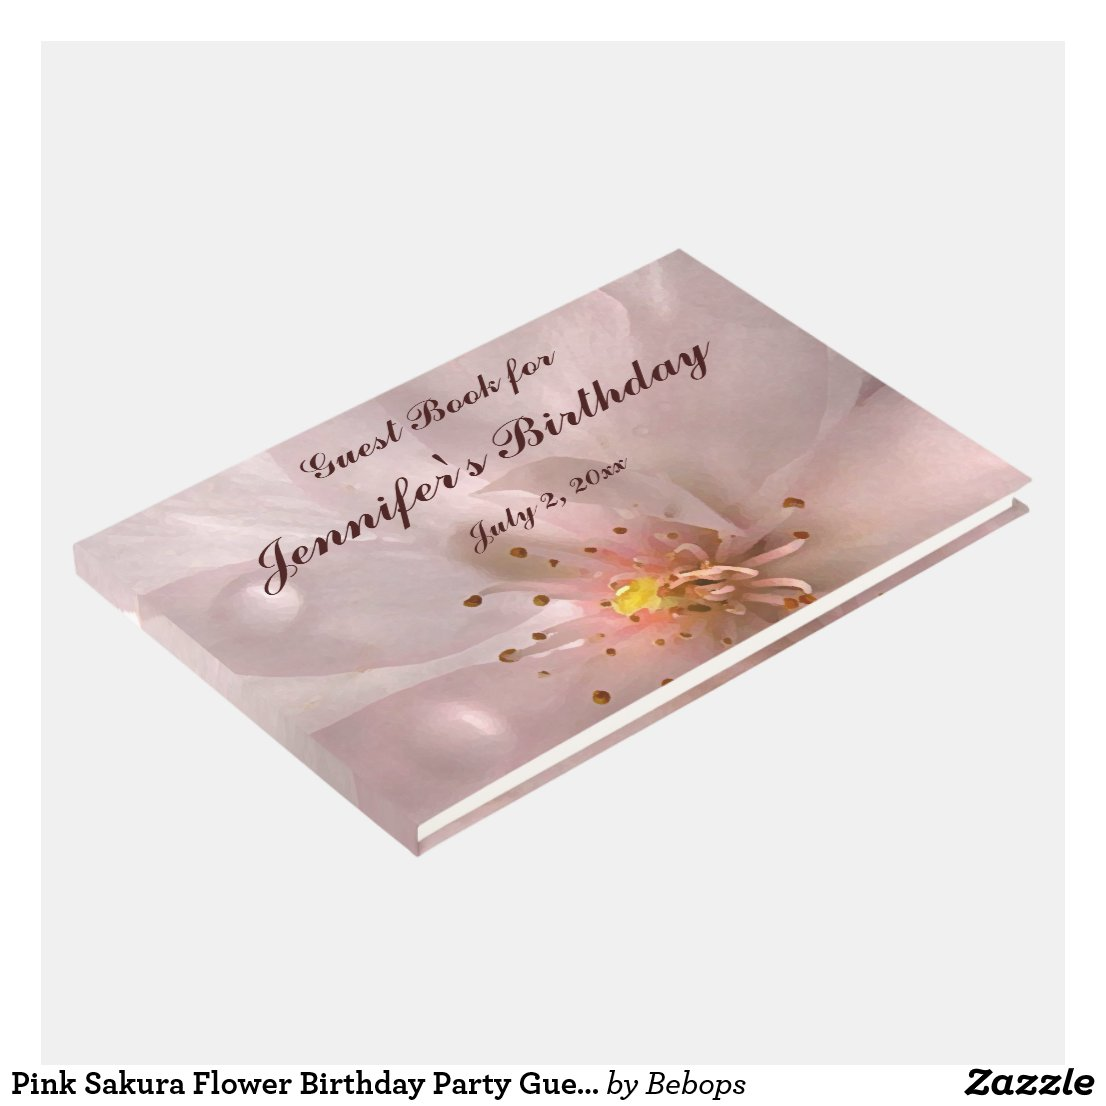 Pink Sakura Flower Birthday Party Guest Book